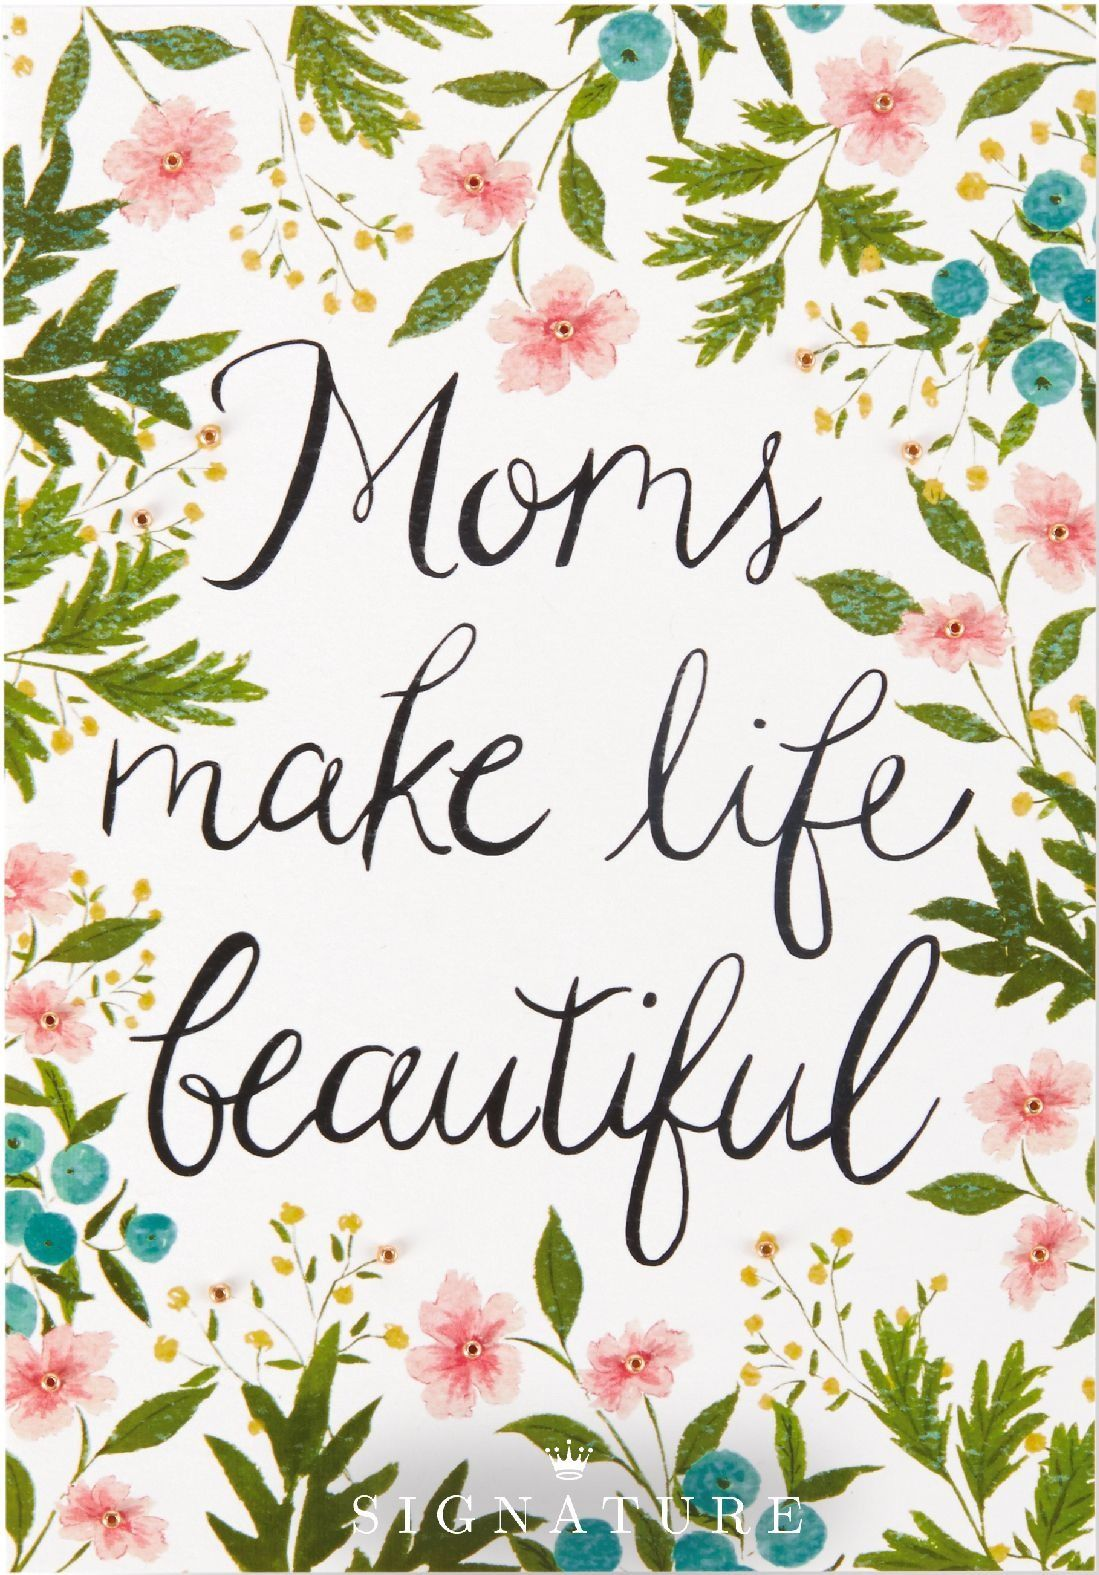 Merveilleux Moms Make Life Beautiful. Let Mom Know How Thankful You Are For Her Love  And Support With This Floral Inspired Motheru0027s Day Card From Hallmark  Signatureu2014the ...